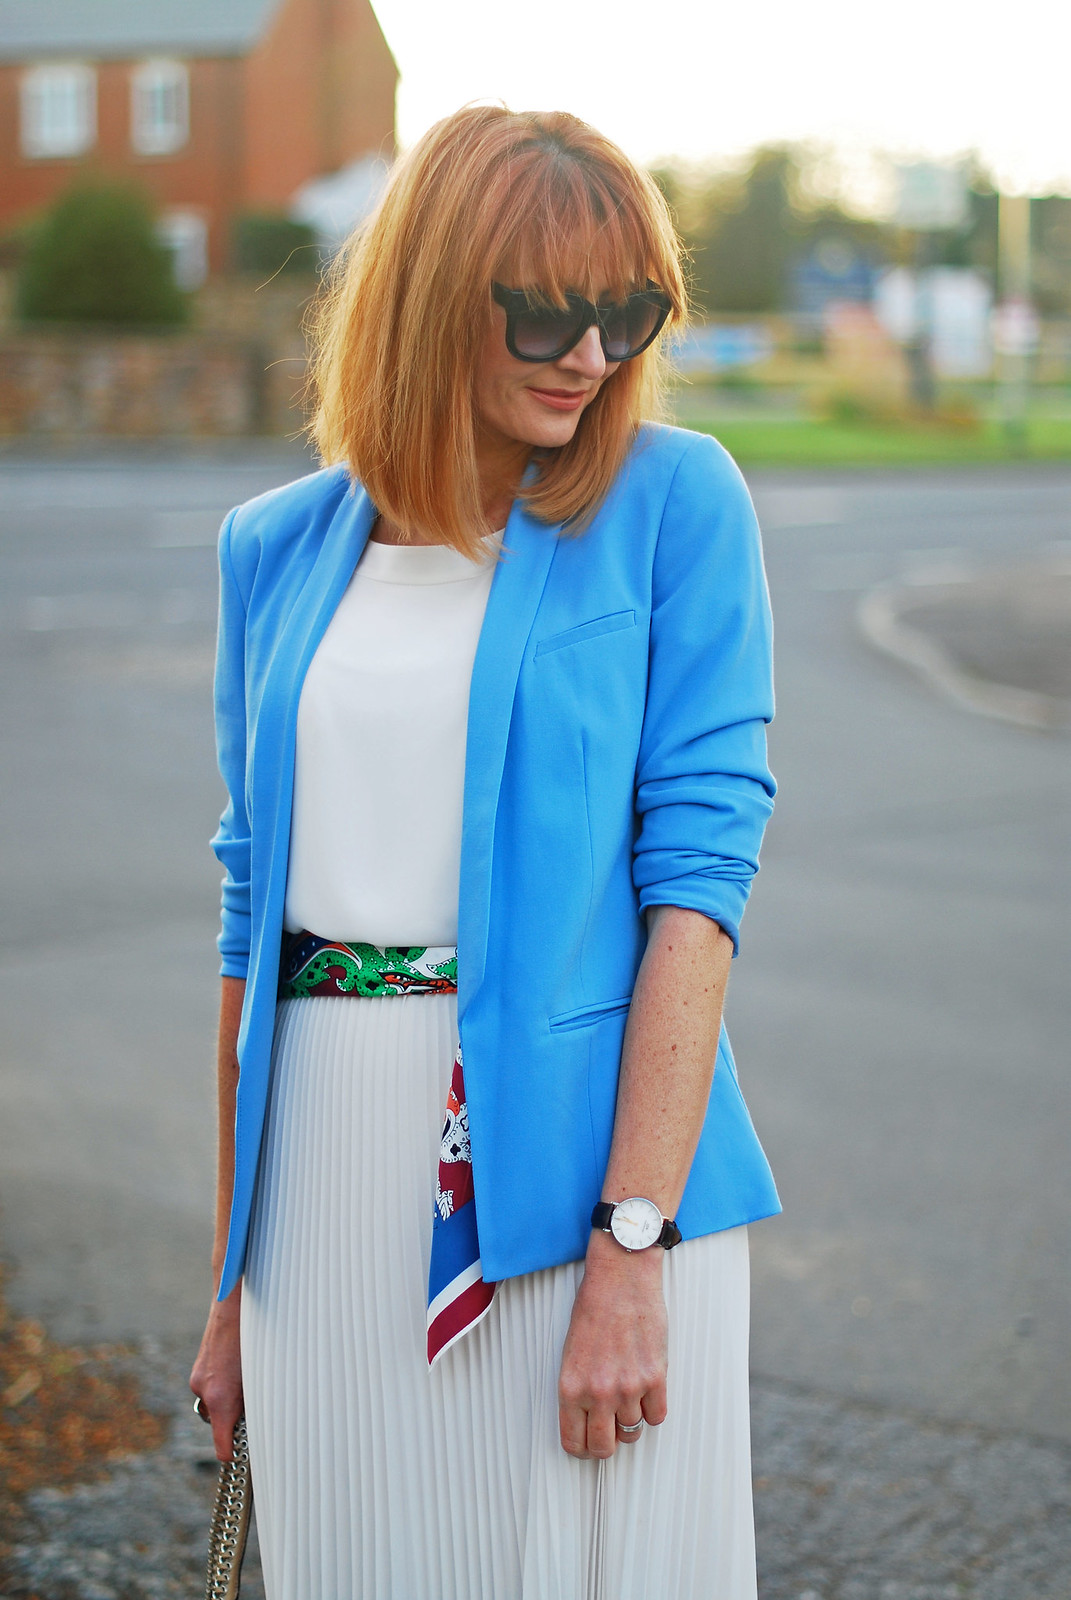 SS16 White pleated maxi skirt, white chiffon top, blue blazer, scarf as belt | Not Dressed As Lamb